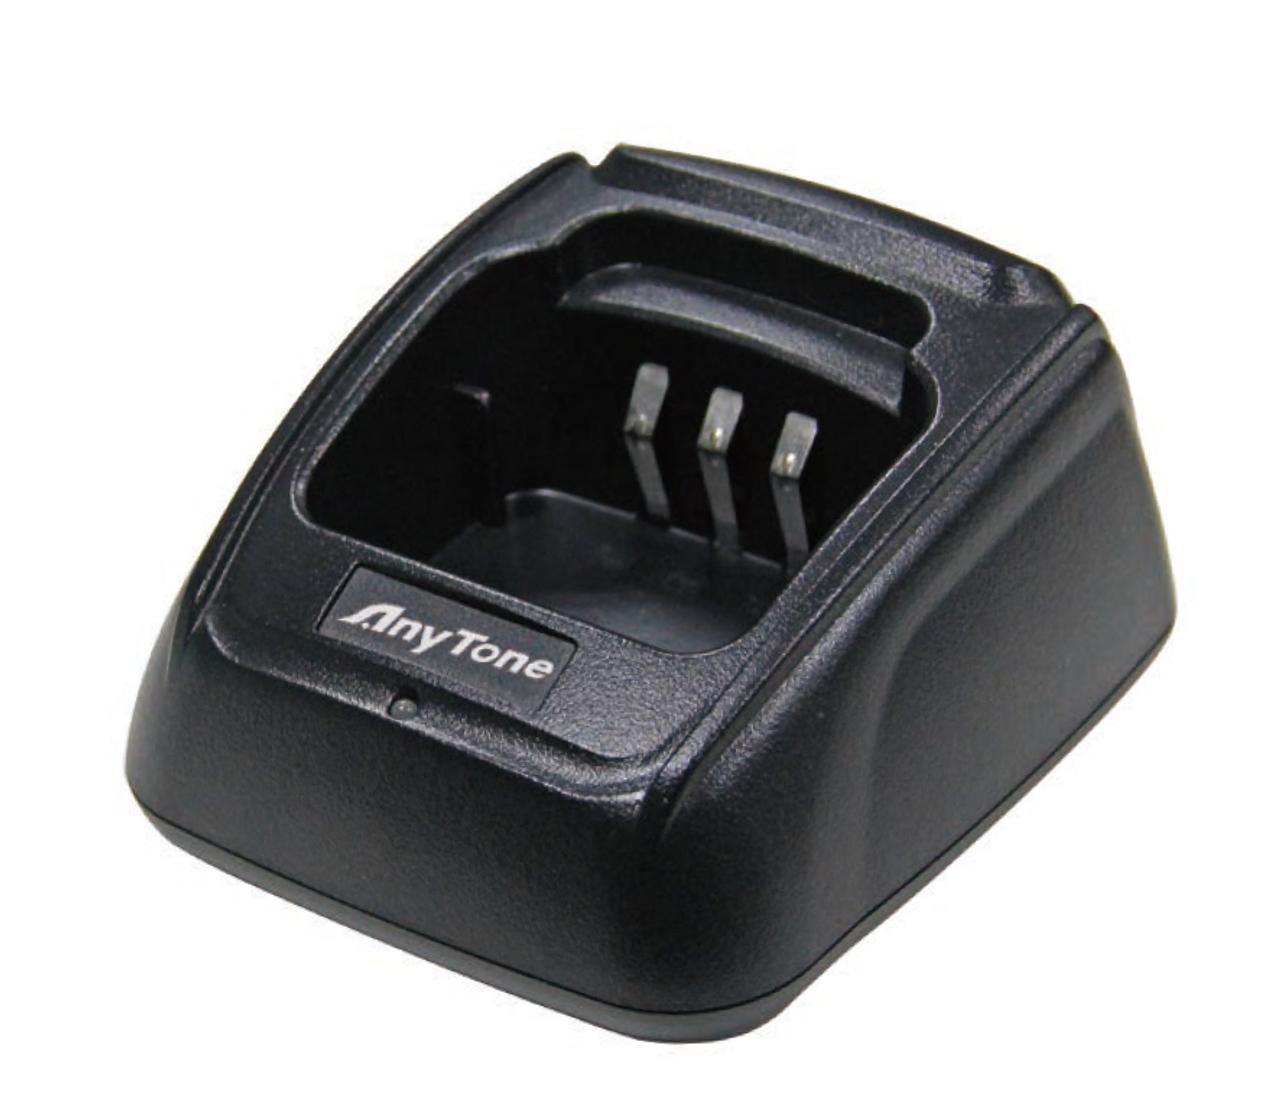 AT-D878UV Charger